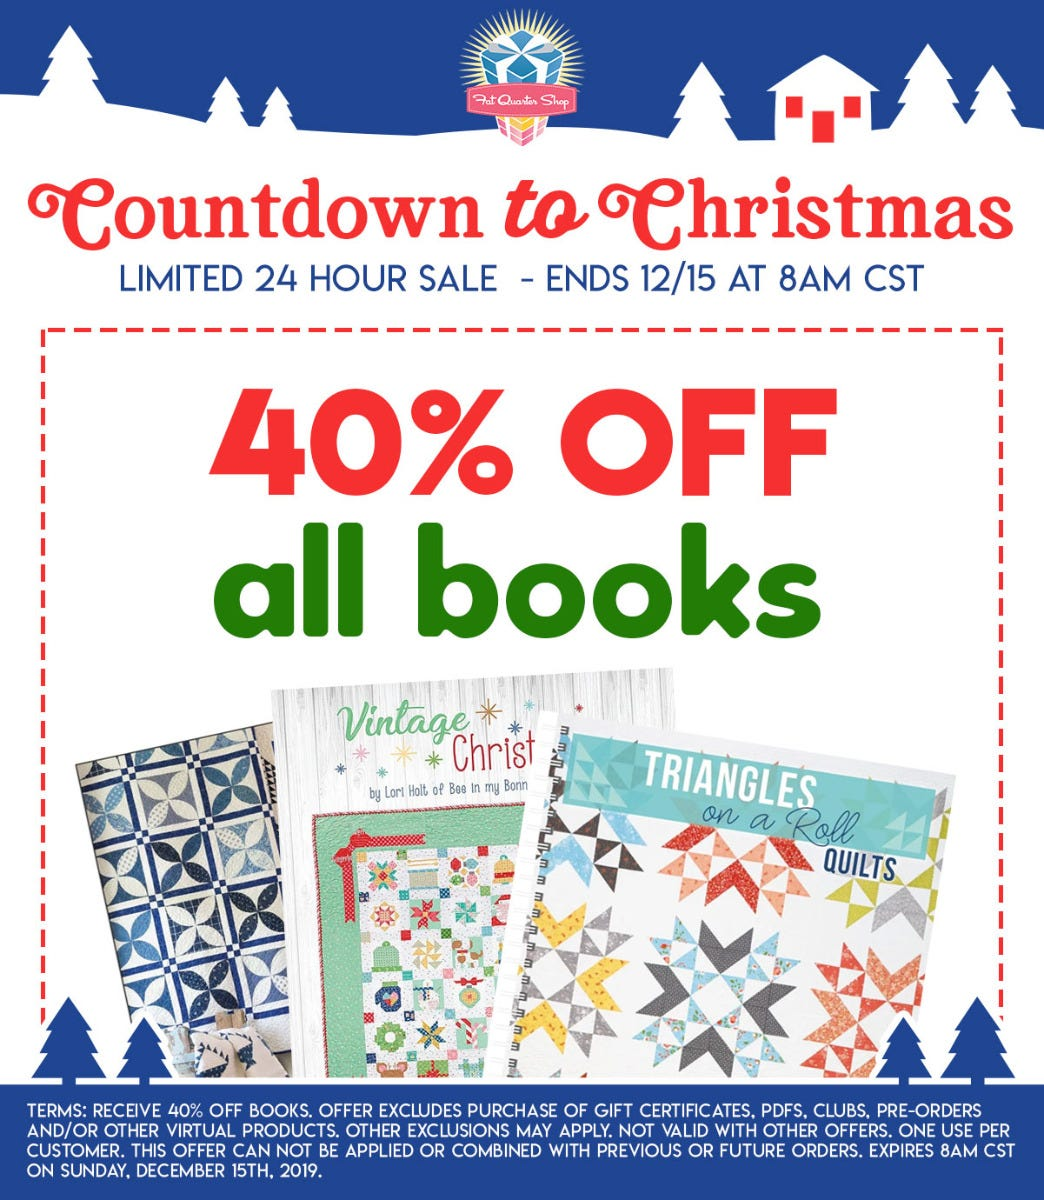 Countdown to Christmas Quilting Book Sale